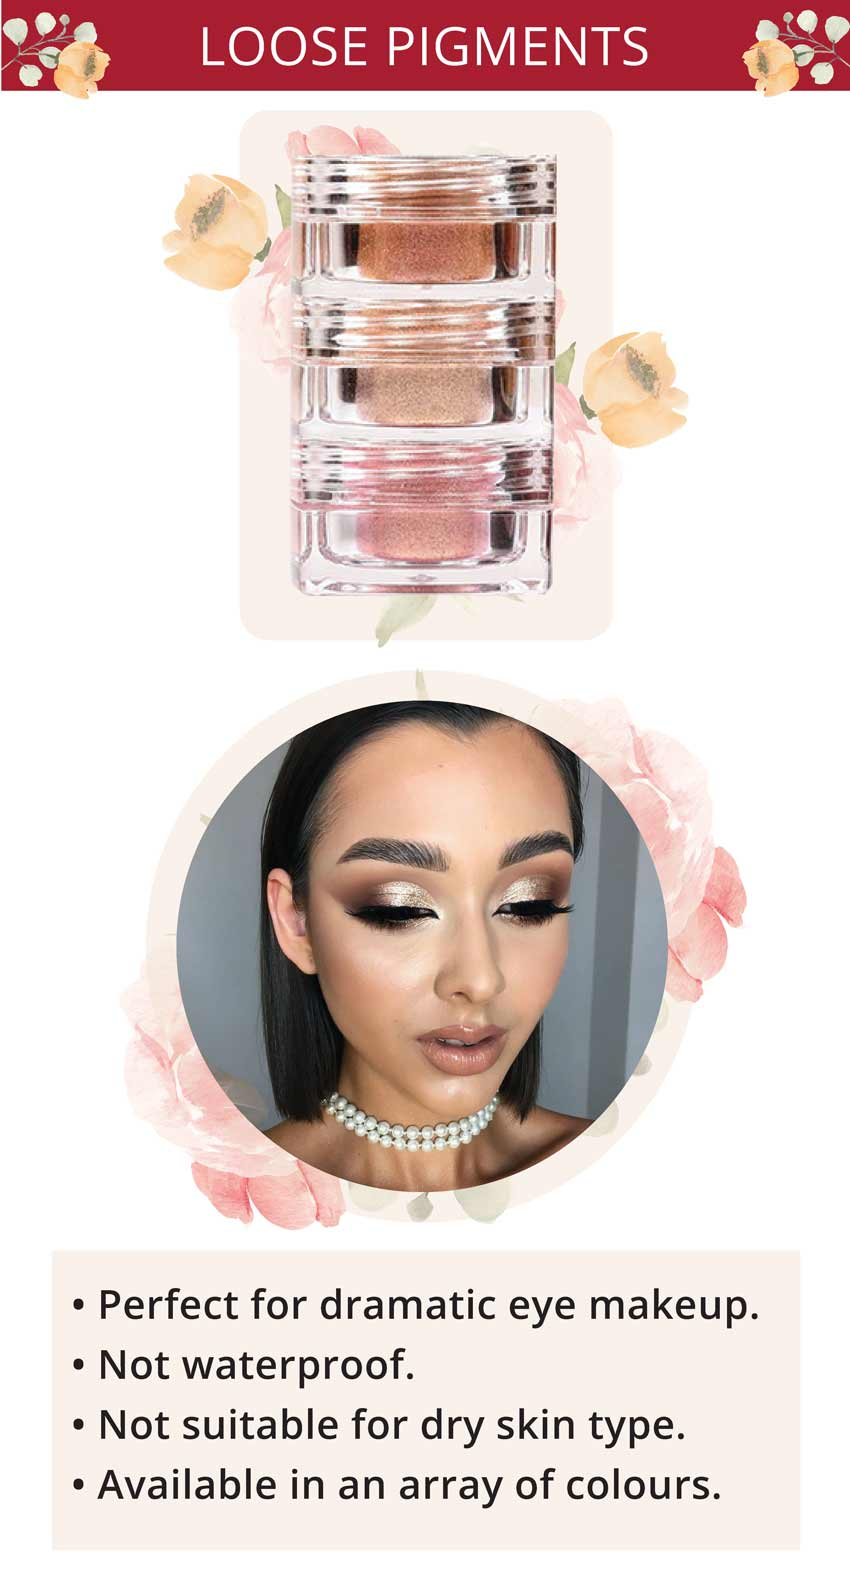 pac pigment tower loose pigment eyeshadow makeup look inspiration